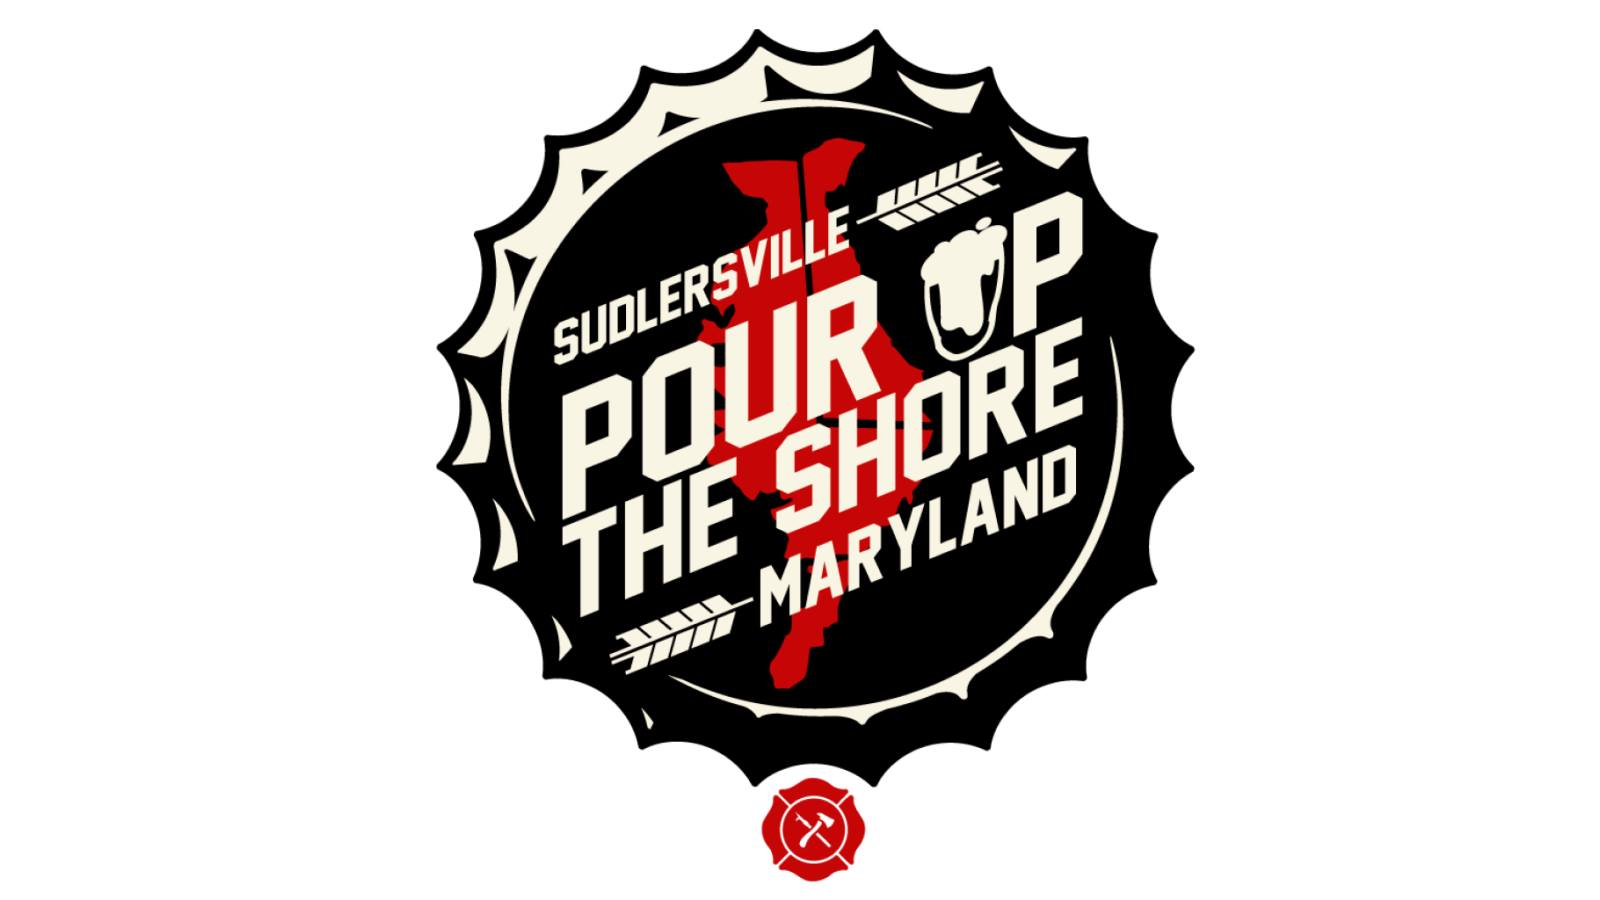 Sudlersville pour up the shore Maryland